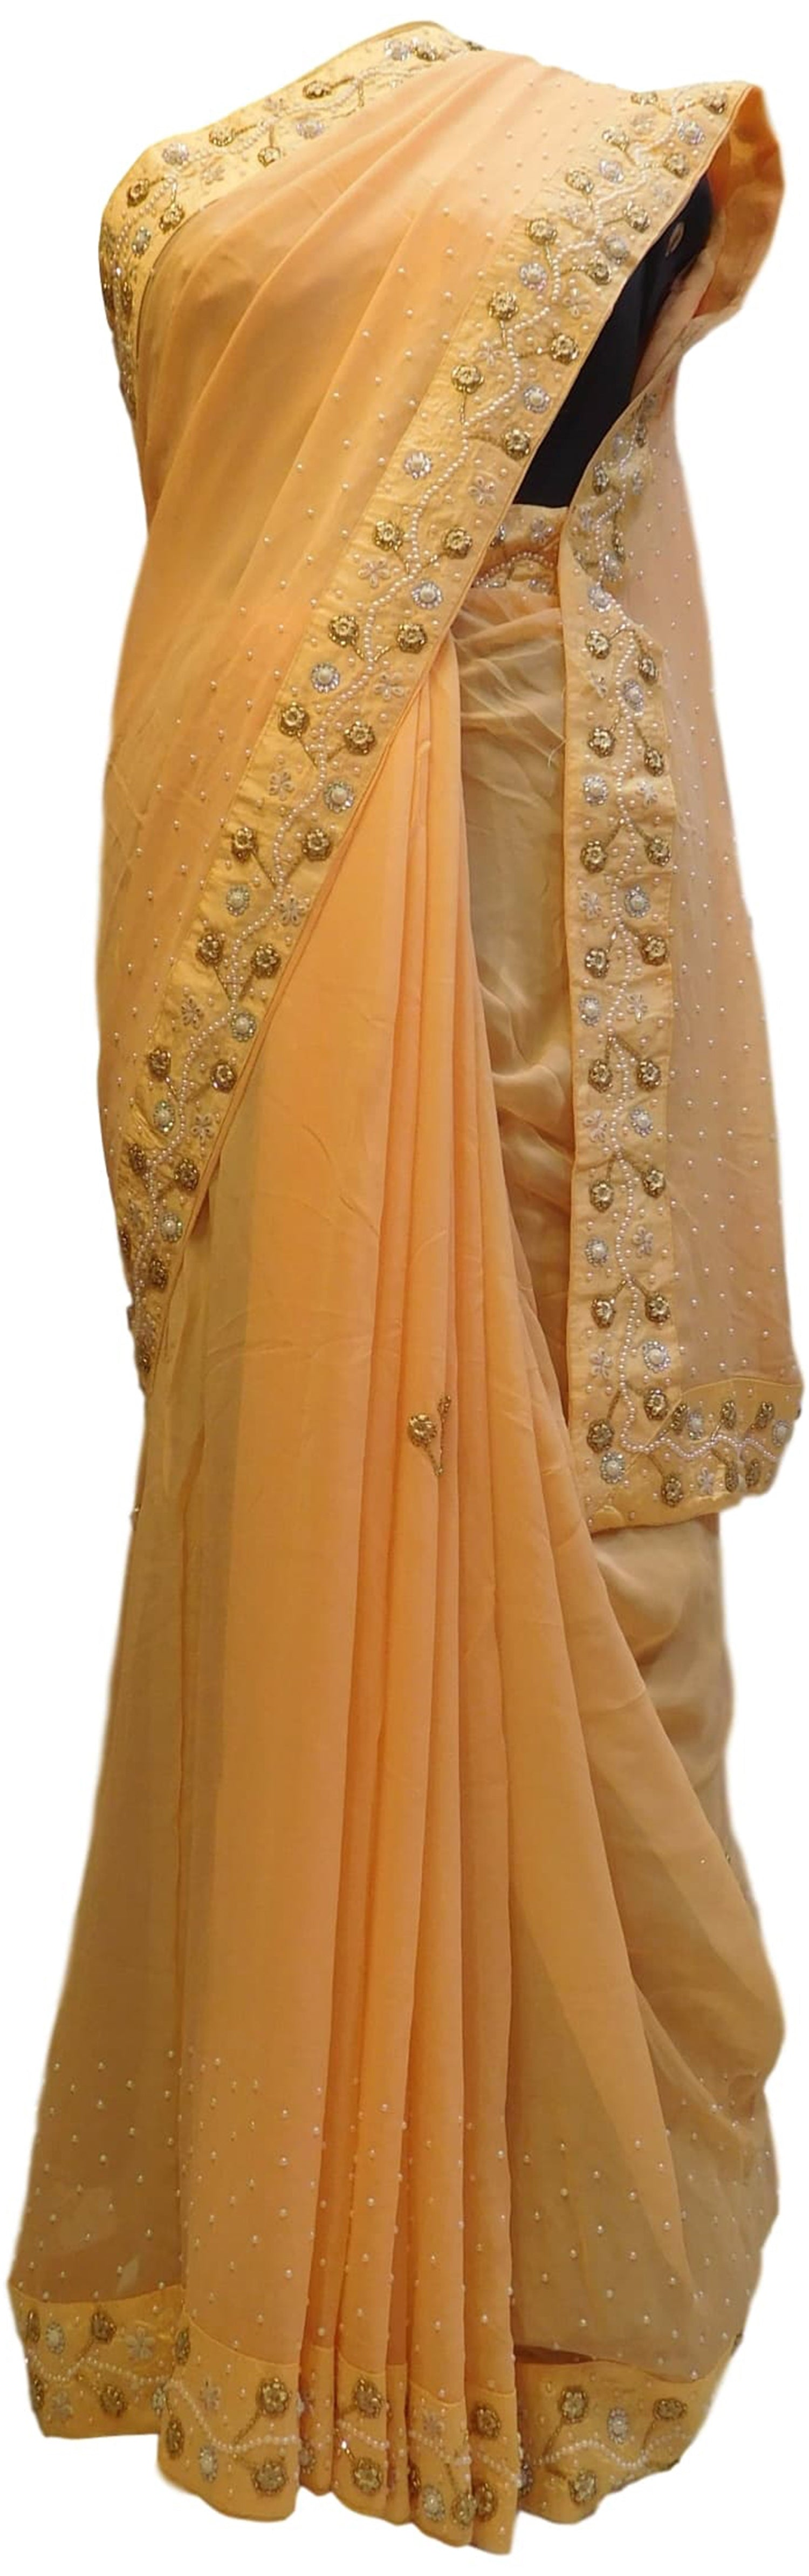 Yellow Designer Georgette (Viscos) Hand Embroidery Cutdana Pearl Beads Stone Work Saree Sari